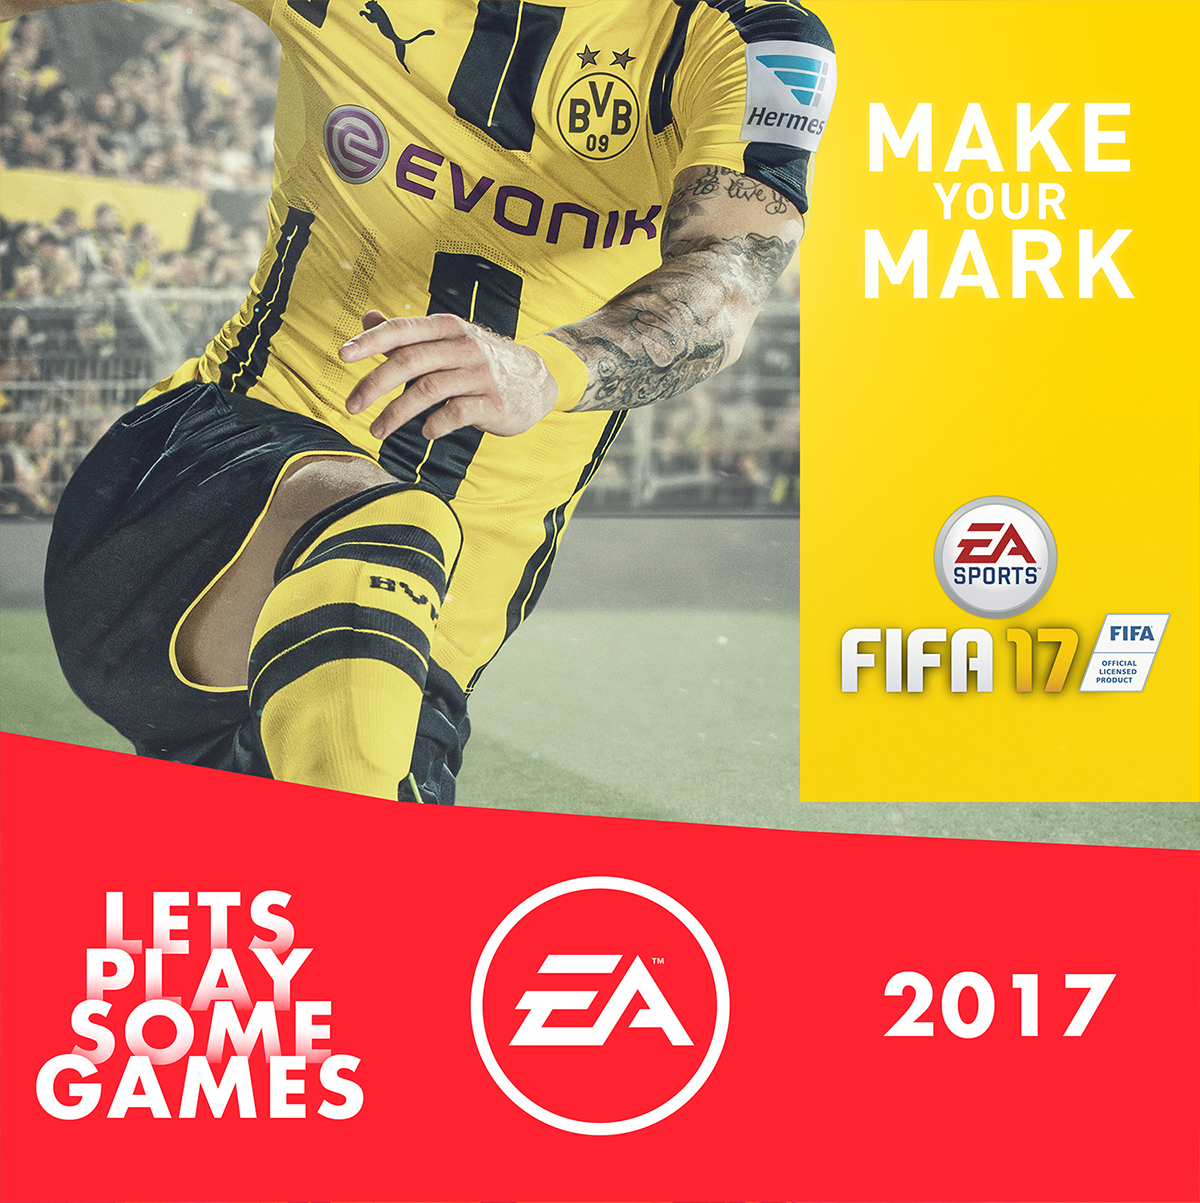 EA UK Instagram Design Part 6